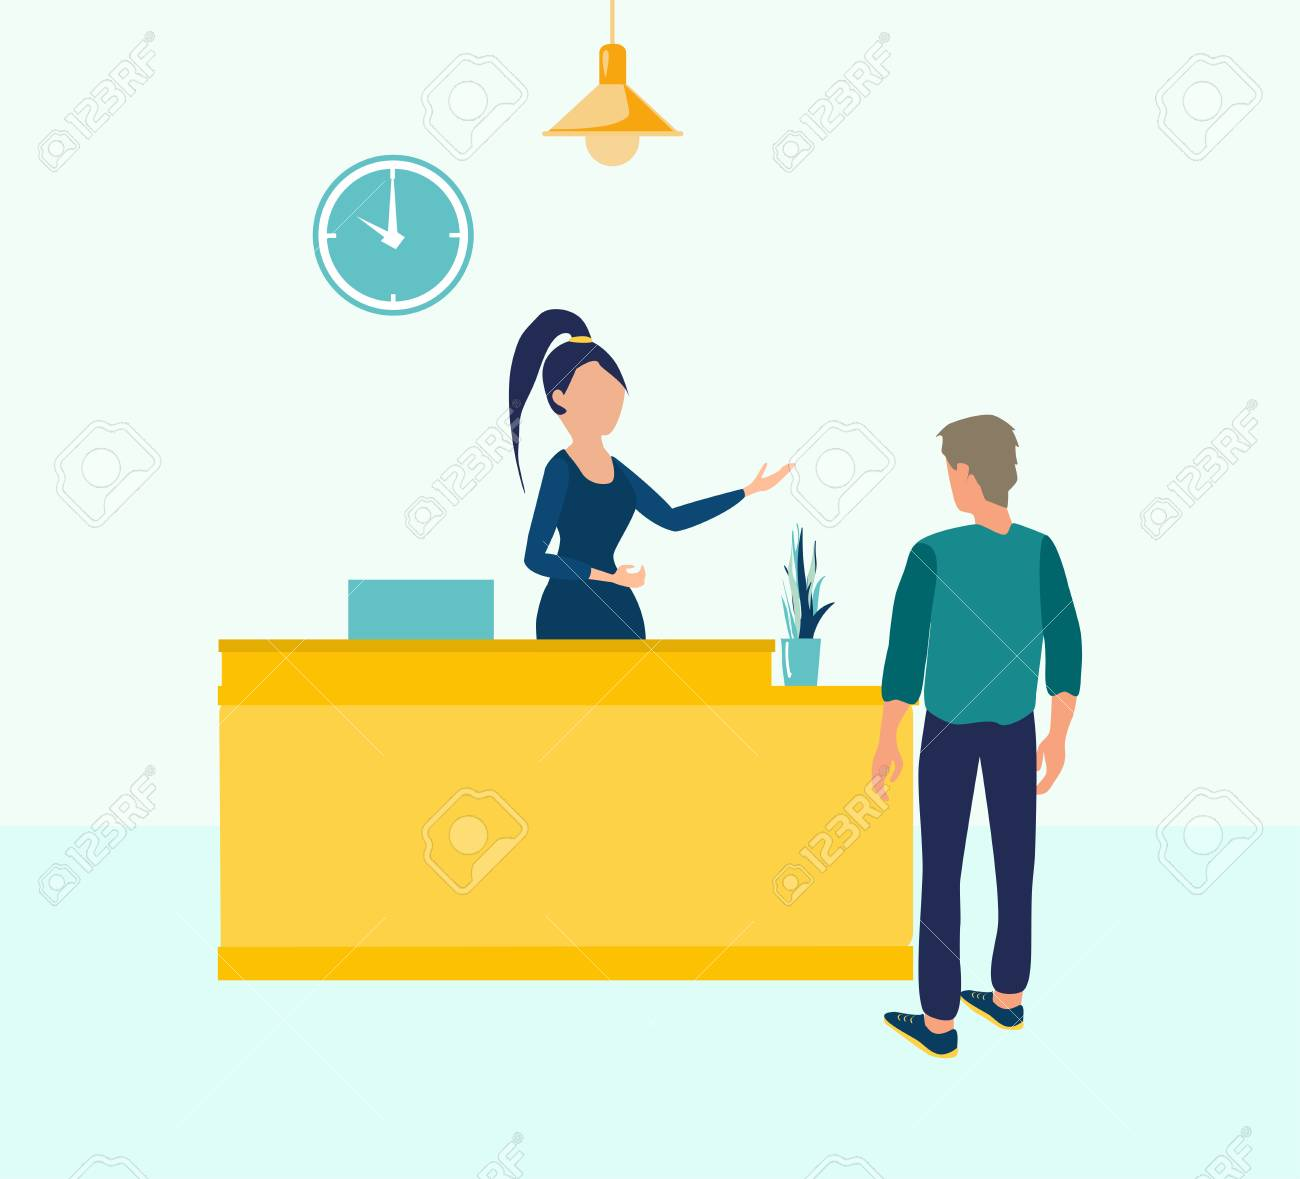 Customer At Reception Young Woman Receptionist Standing At Reception Royalty Free Cliparts Vectors And Stock Illustration Image 111441066